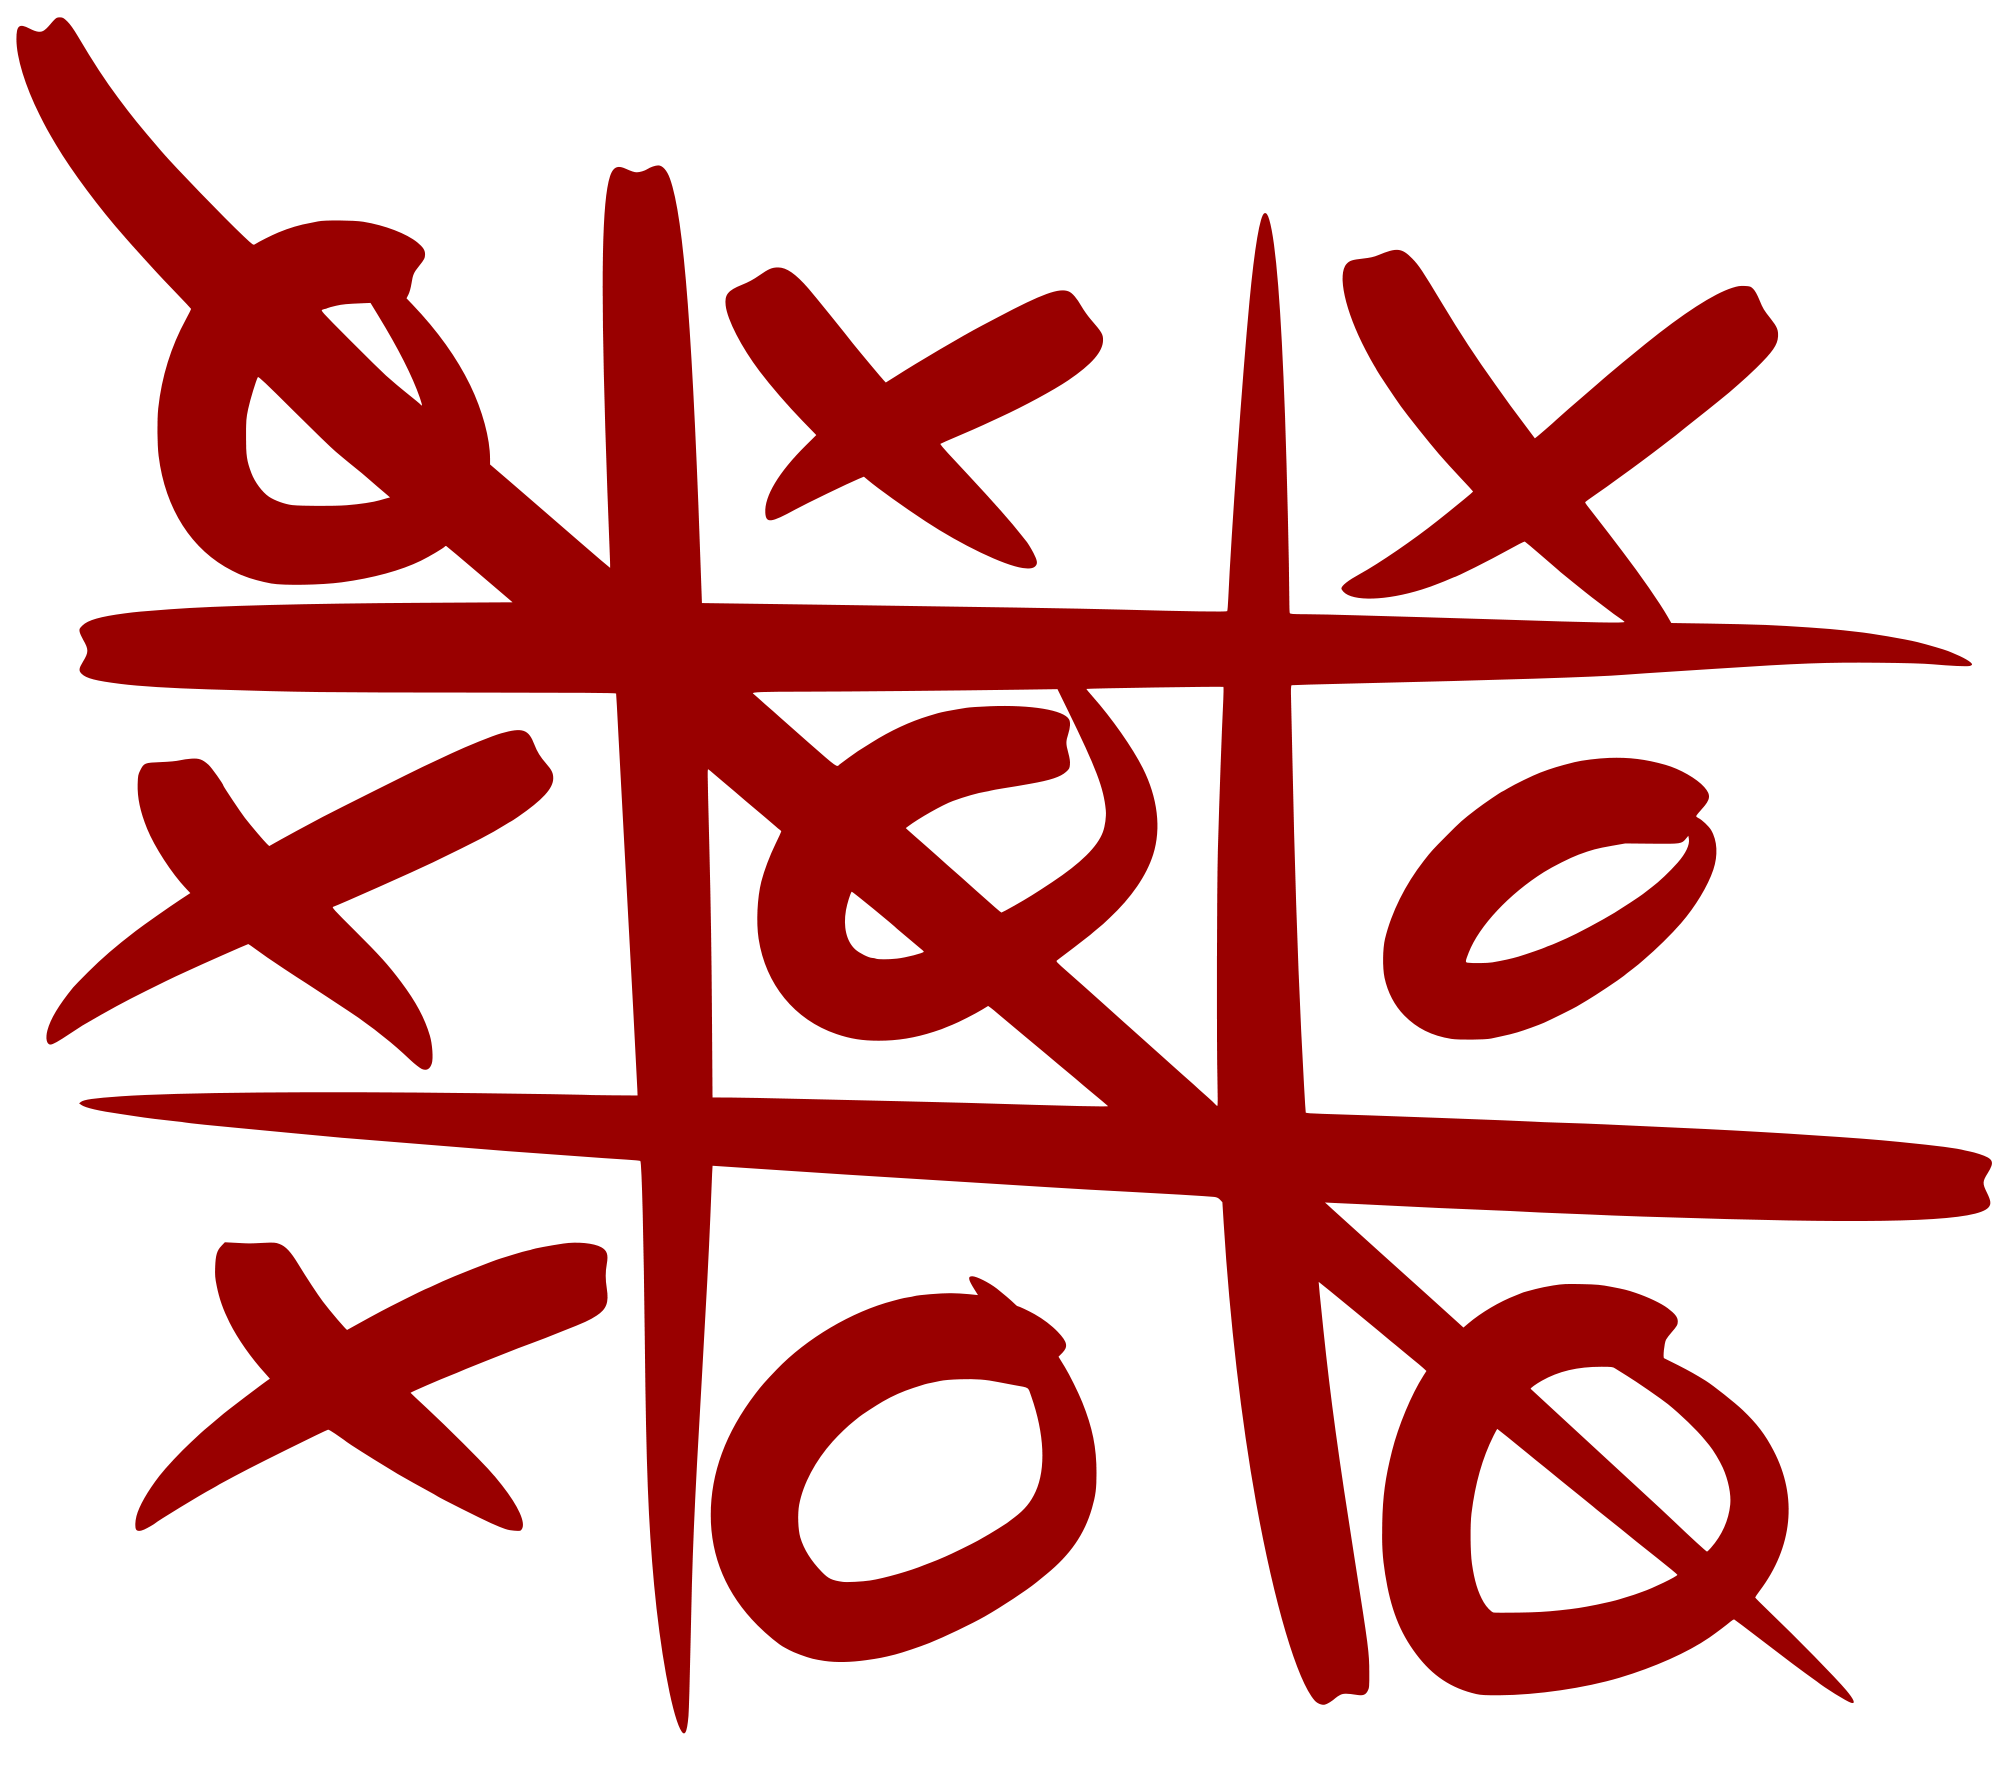 Xoxo svg arrow. Tic tac toe wikipedia